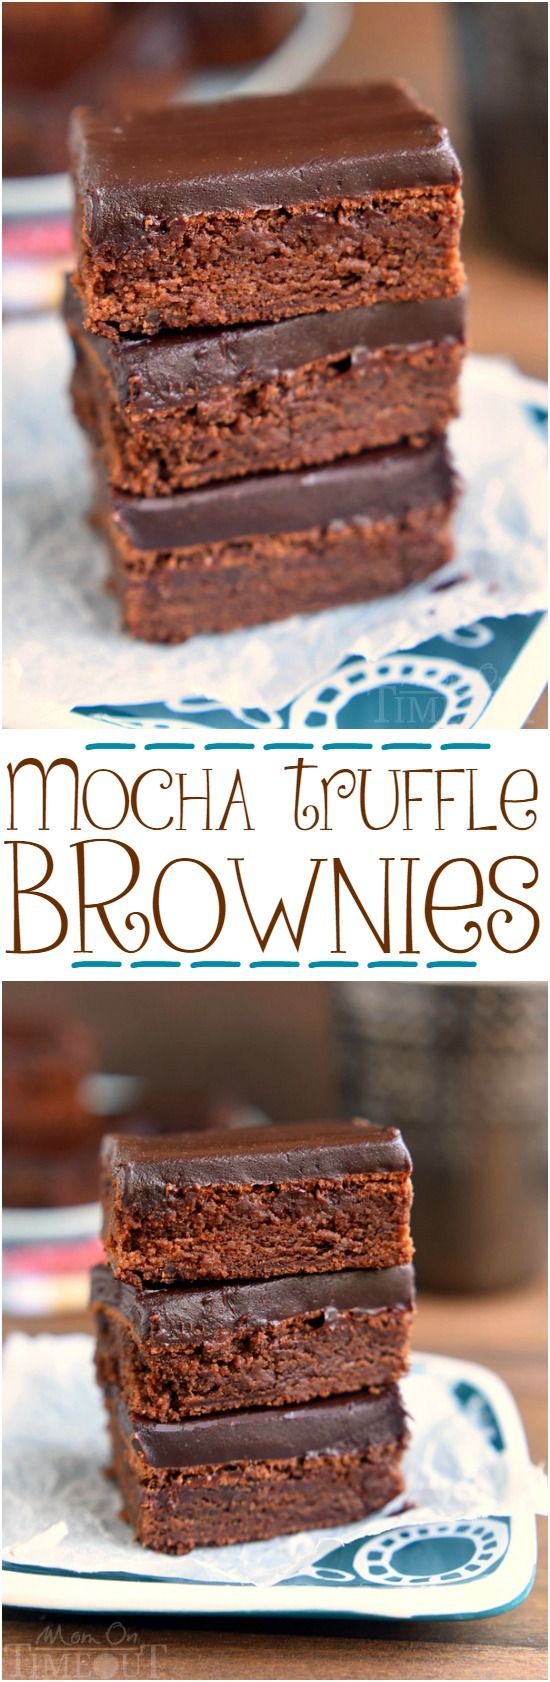 These decadent Mocha Truffle Brownies are just what your sweet tooth is craving. Rich mocha brownies are topped with a decadent chocolate ganache frosting and baked to perfection. All you need is a cold glass of milk! | MomOnTimeout.com | #chocolate #brownie #mocha #dessert